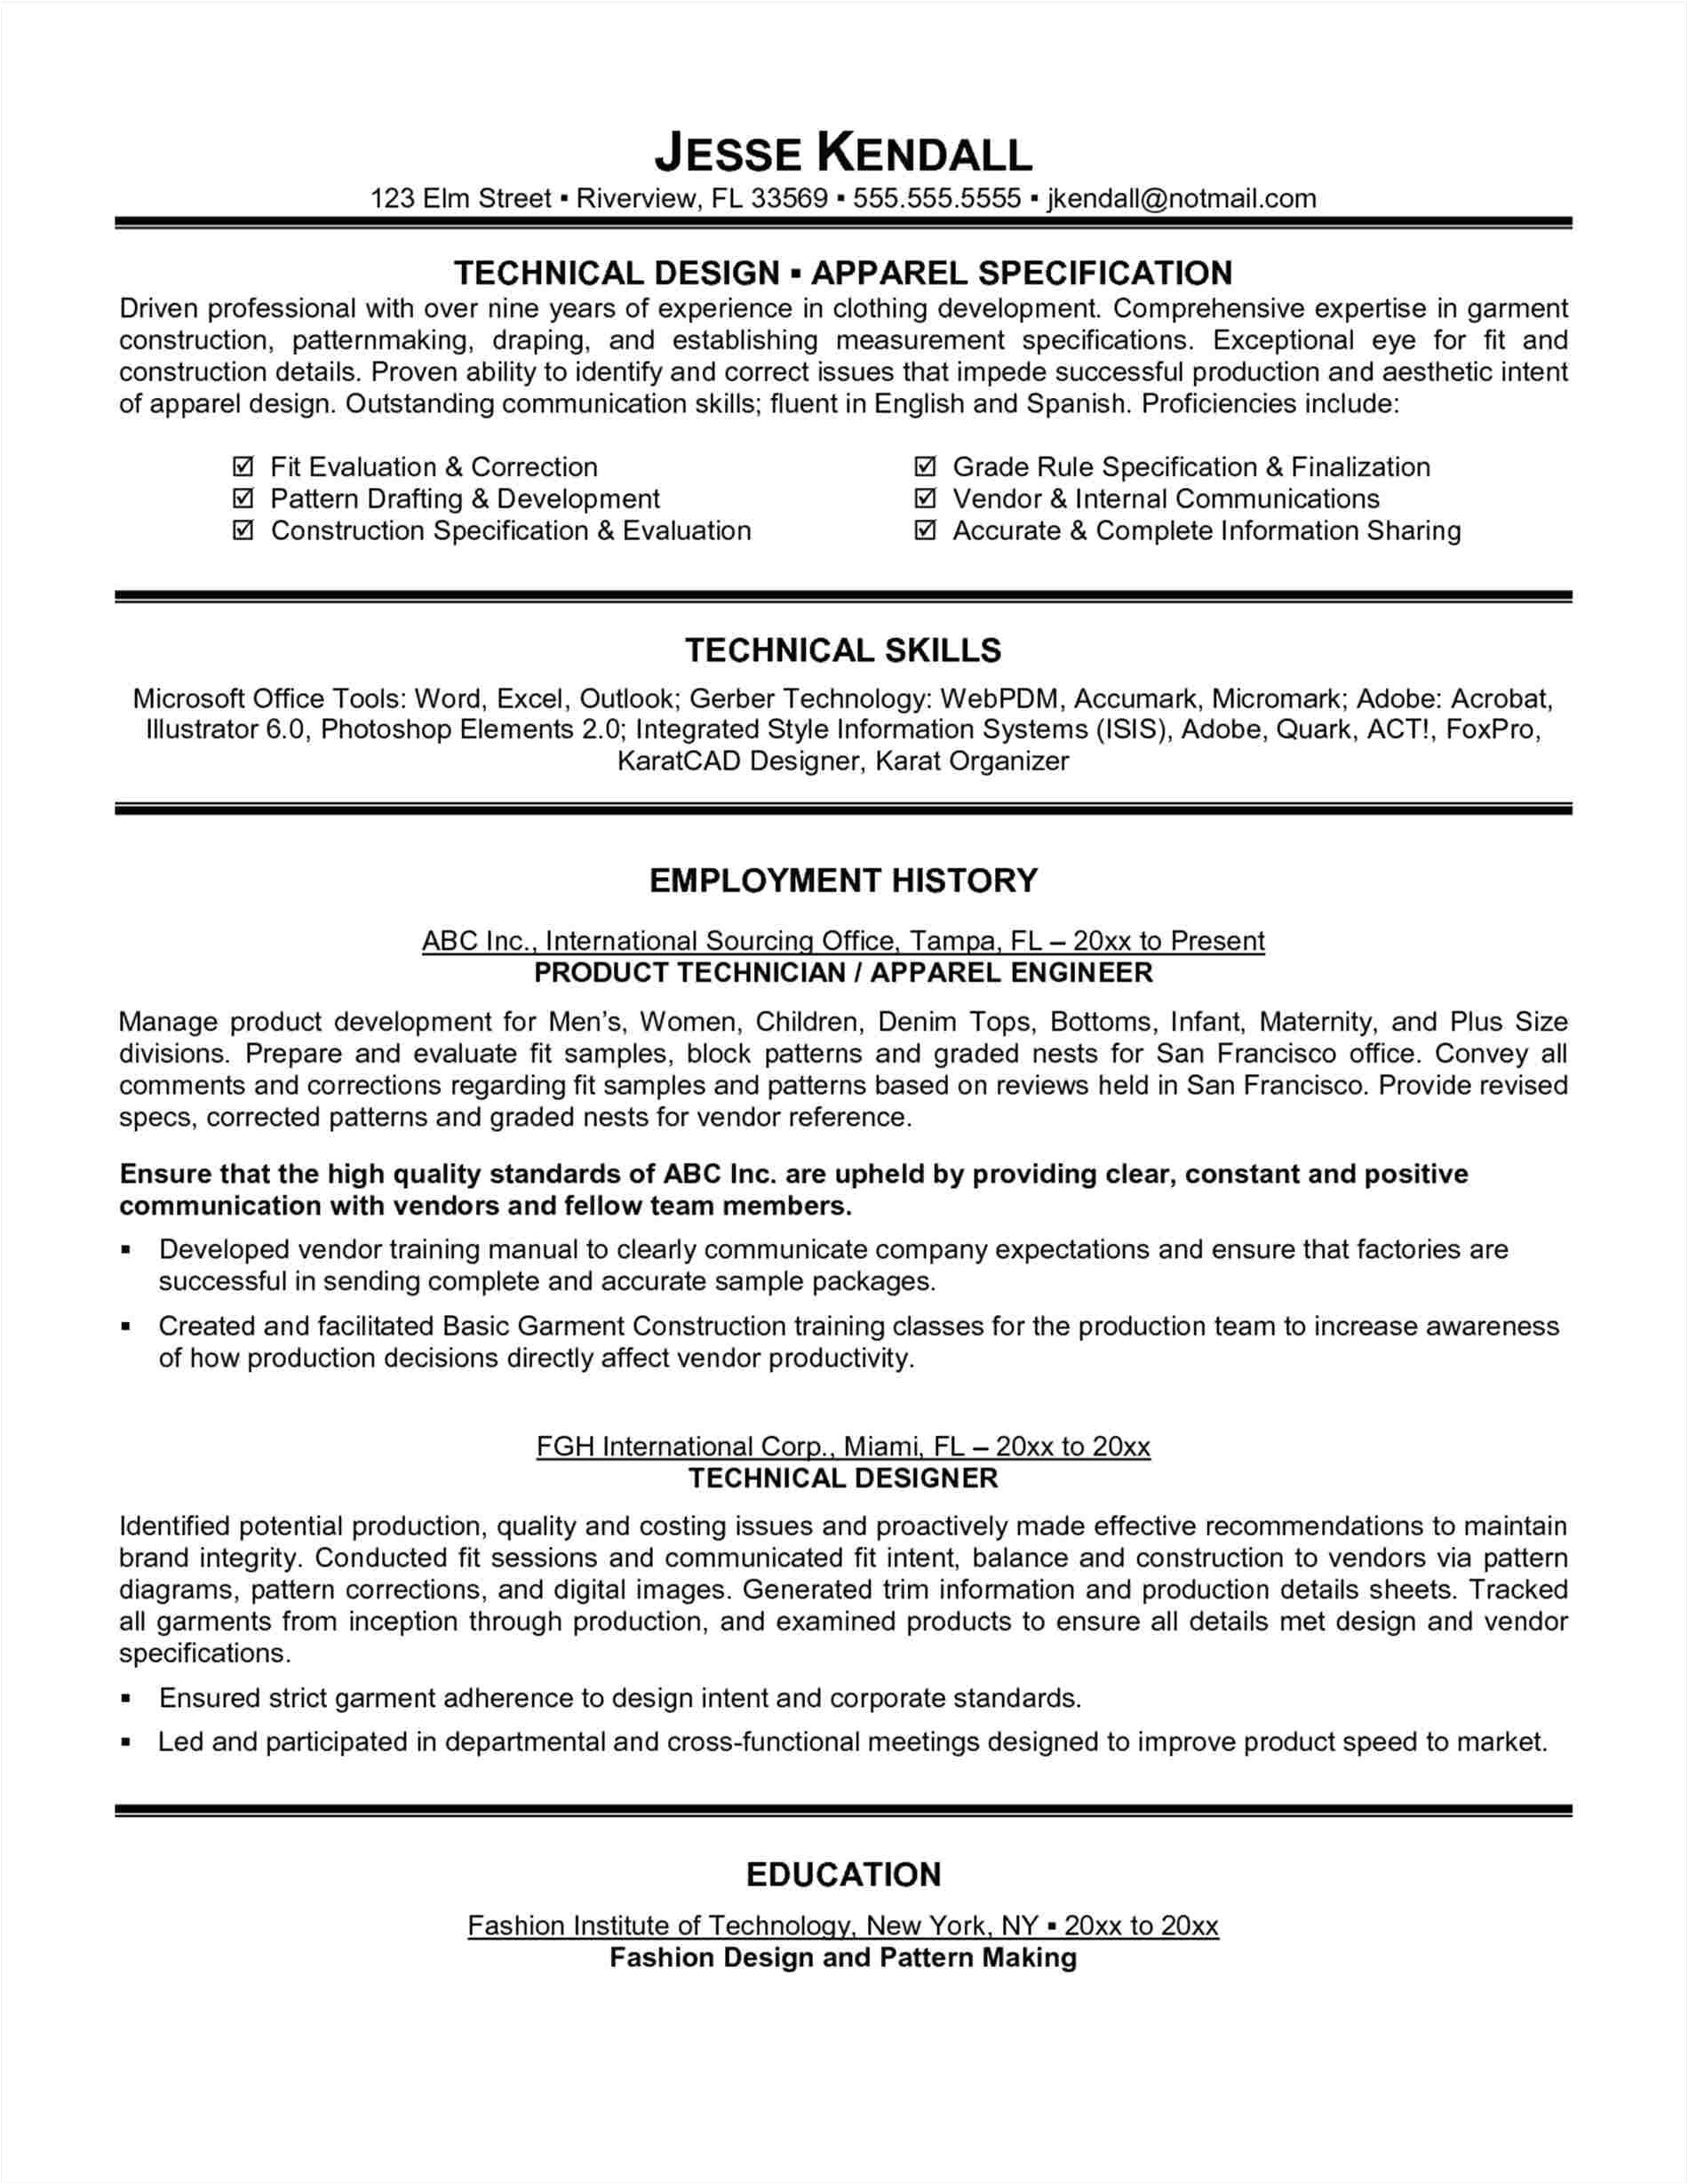 Technical Writer Cover Letter No Experience Sample Technical Writer Cover Letter Cover Letter